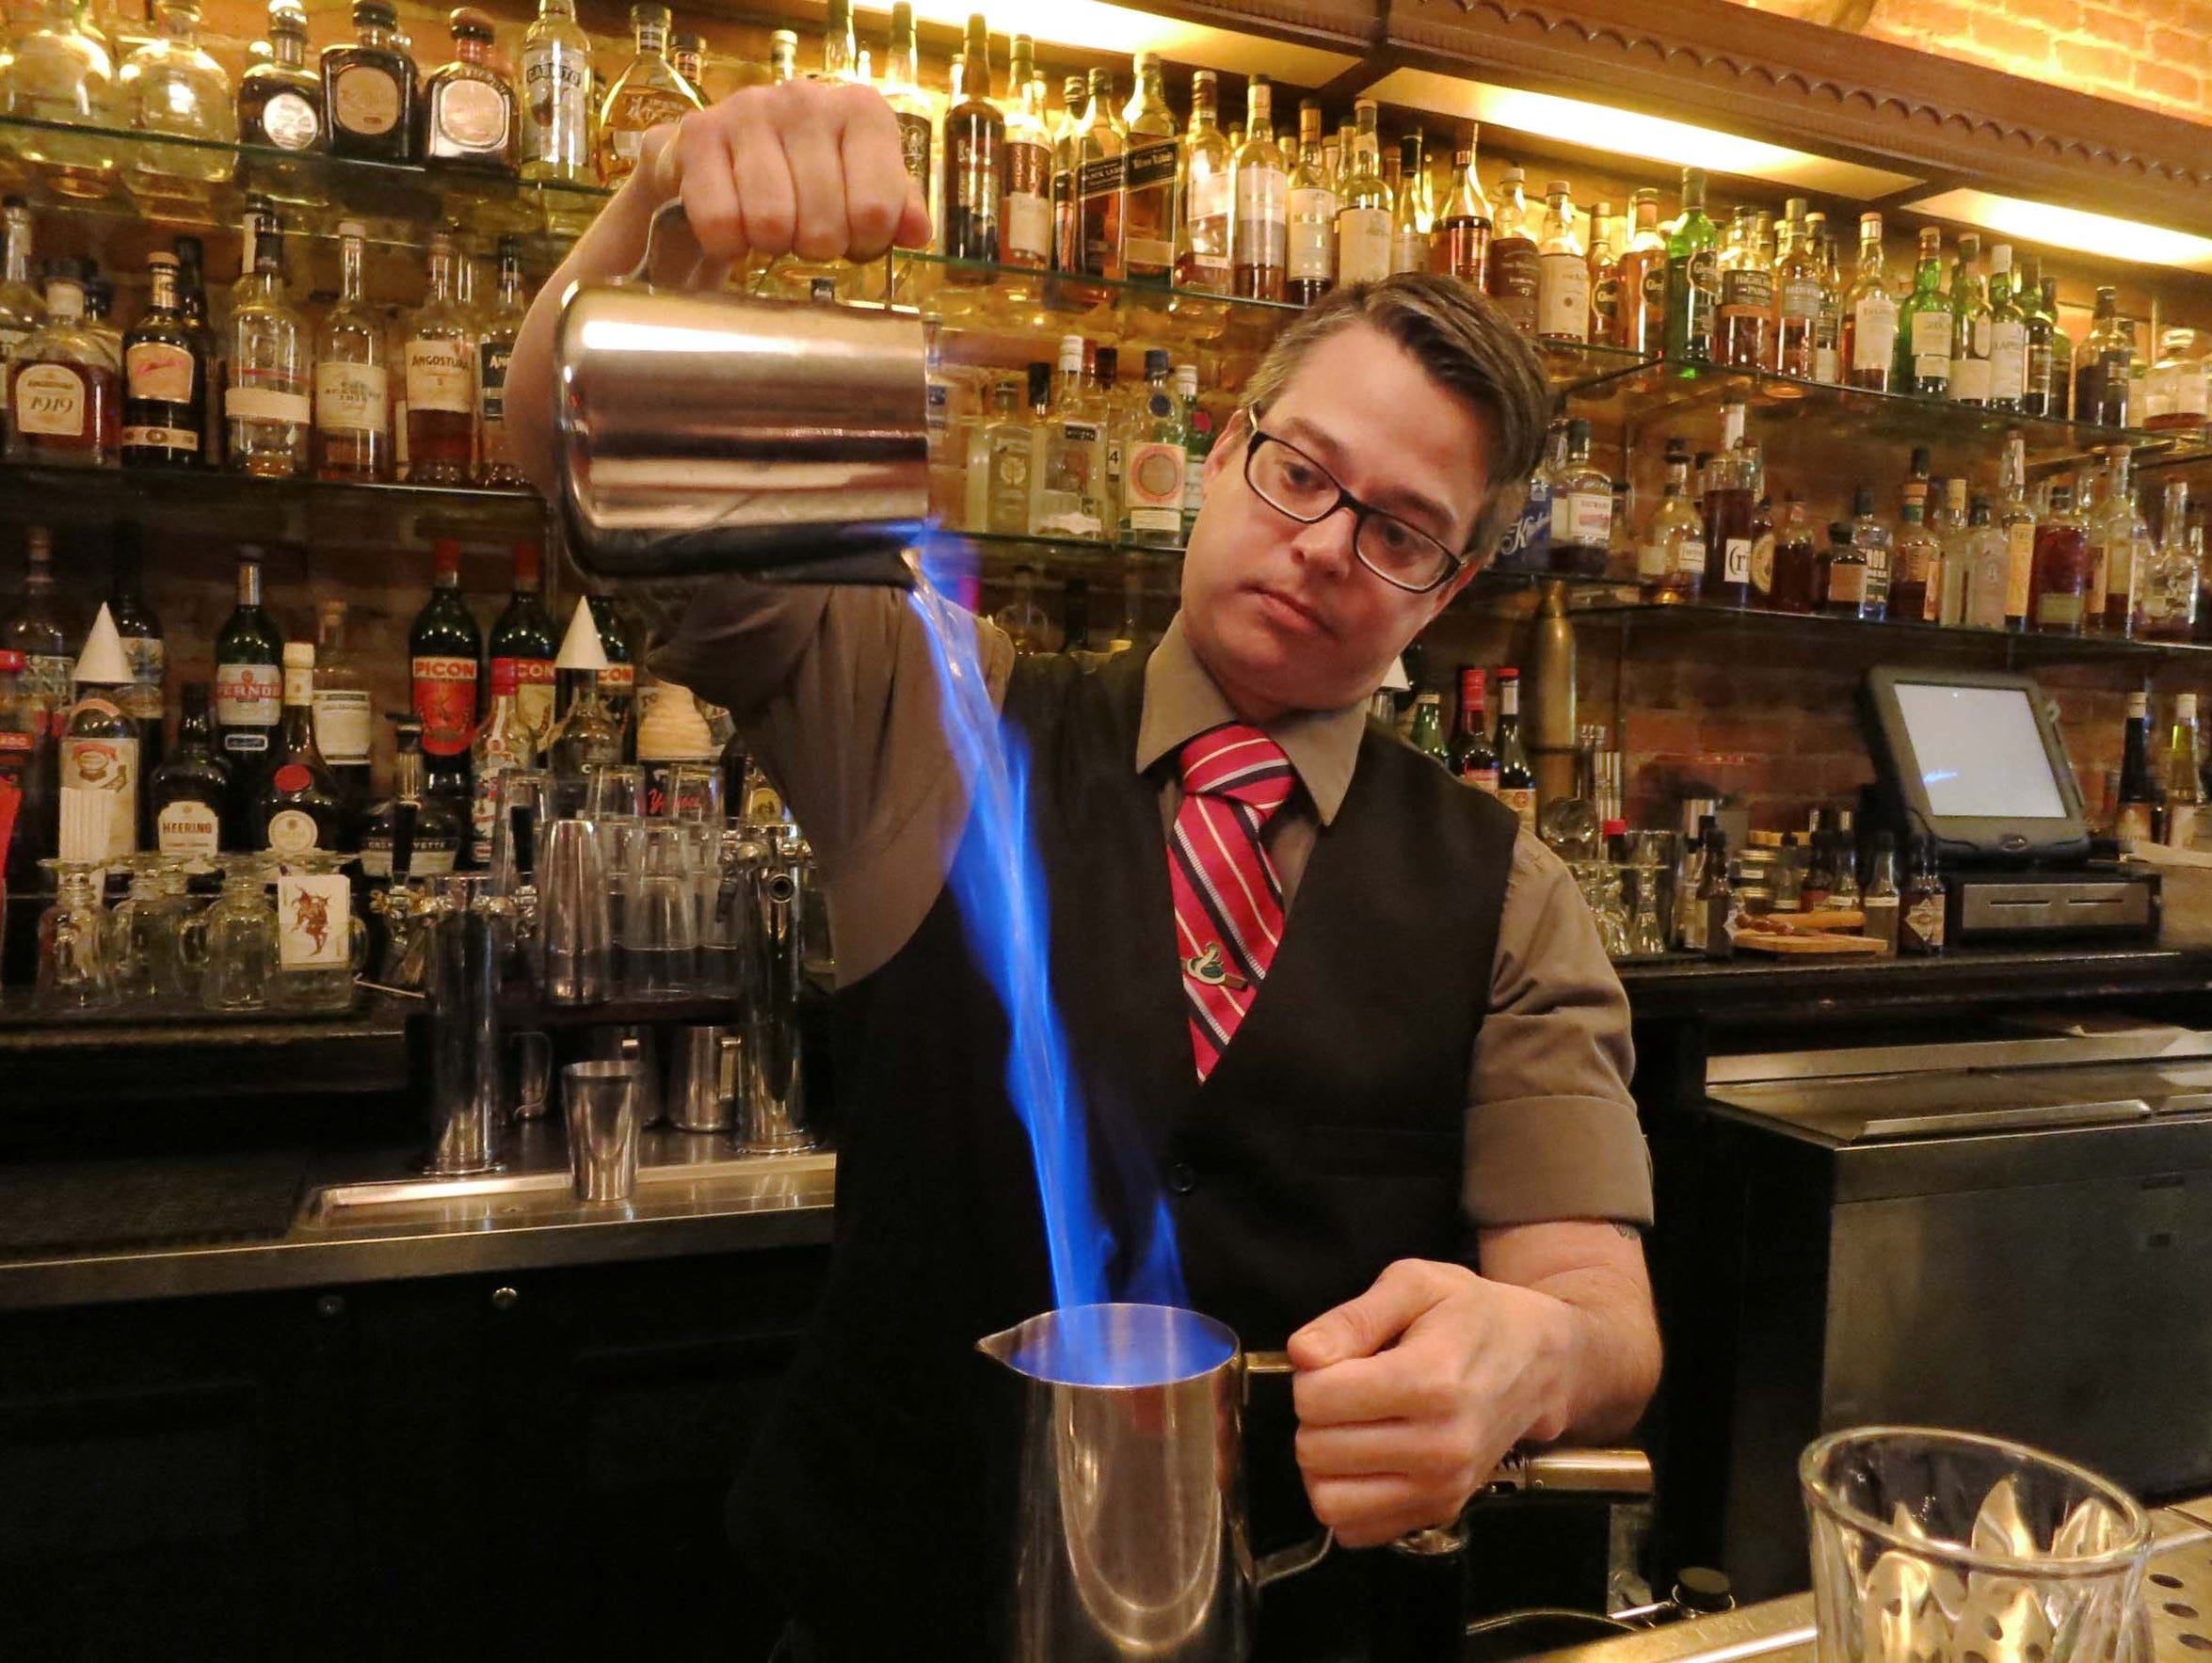 At the Sugar House in Detroit's Corktown, bartender